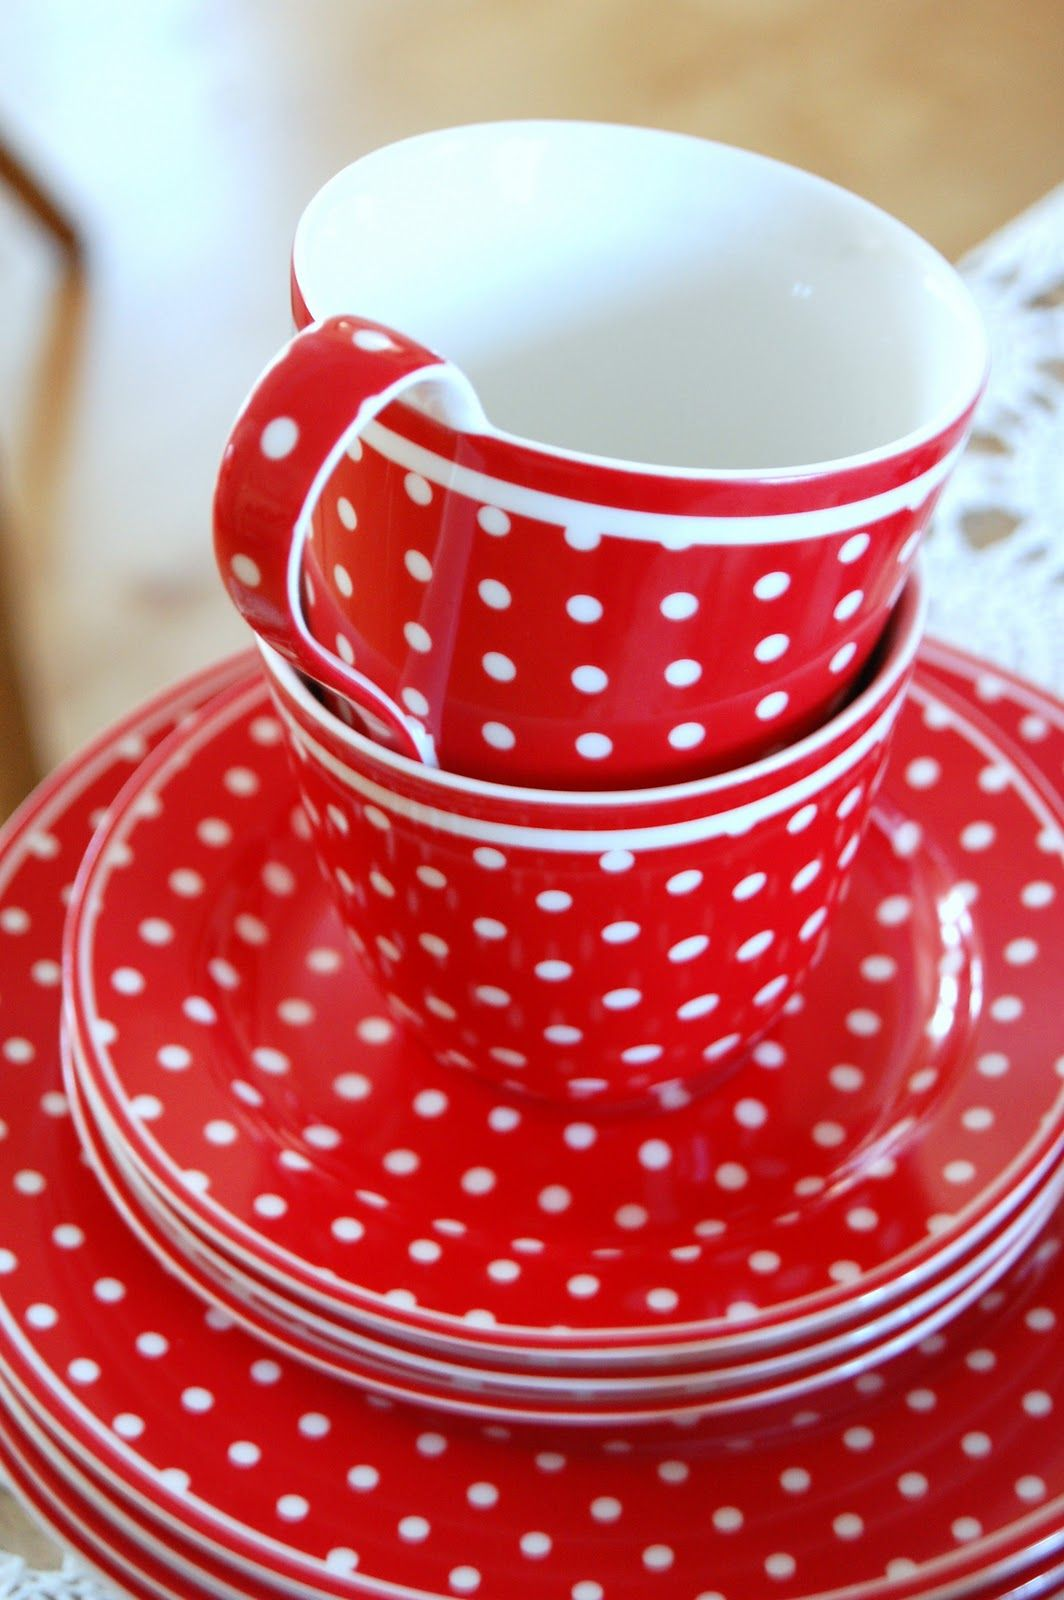 ...red u0026 white polka dots...how perfect!! : red and white polka dot dinnerware - pezcame.com